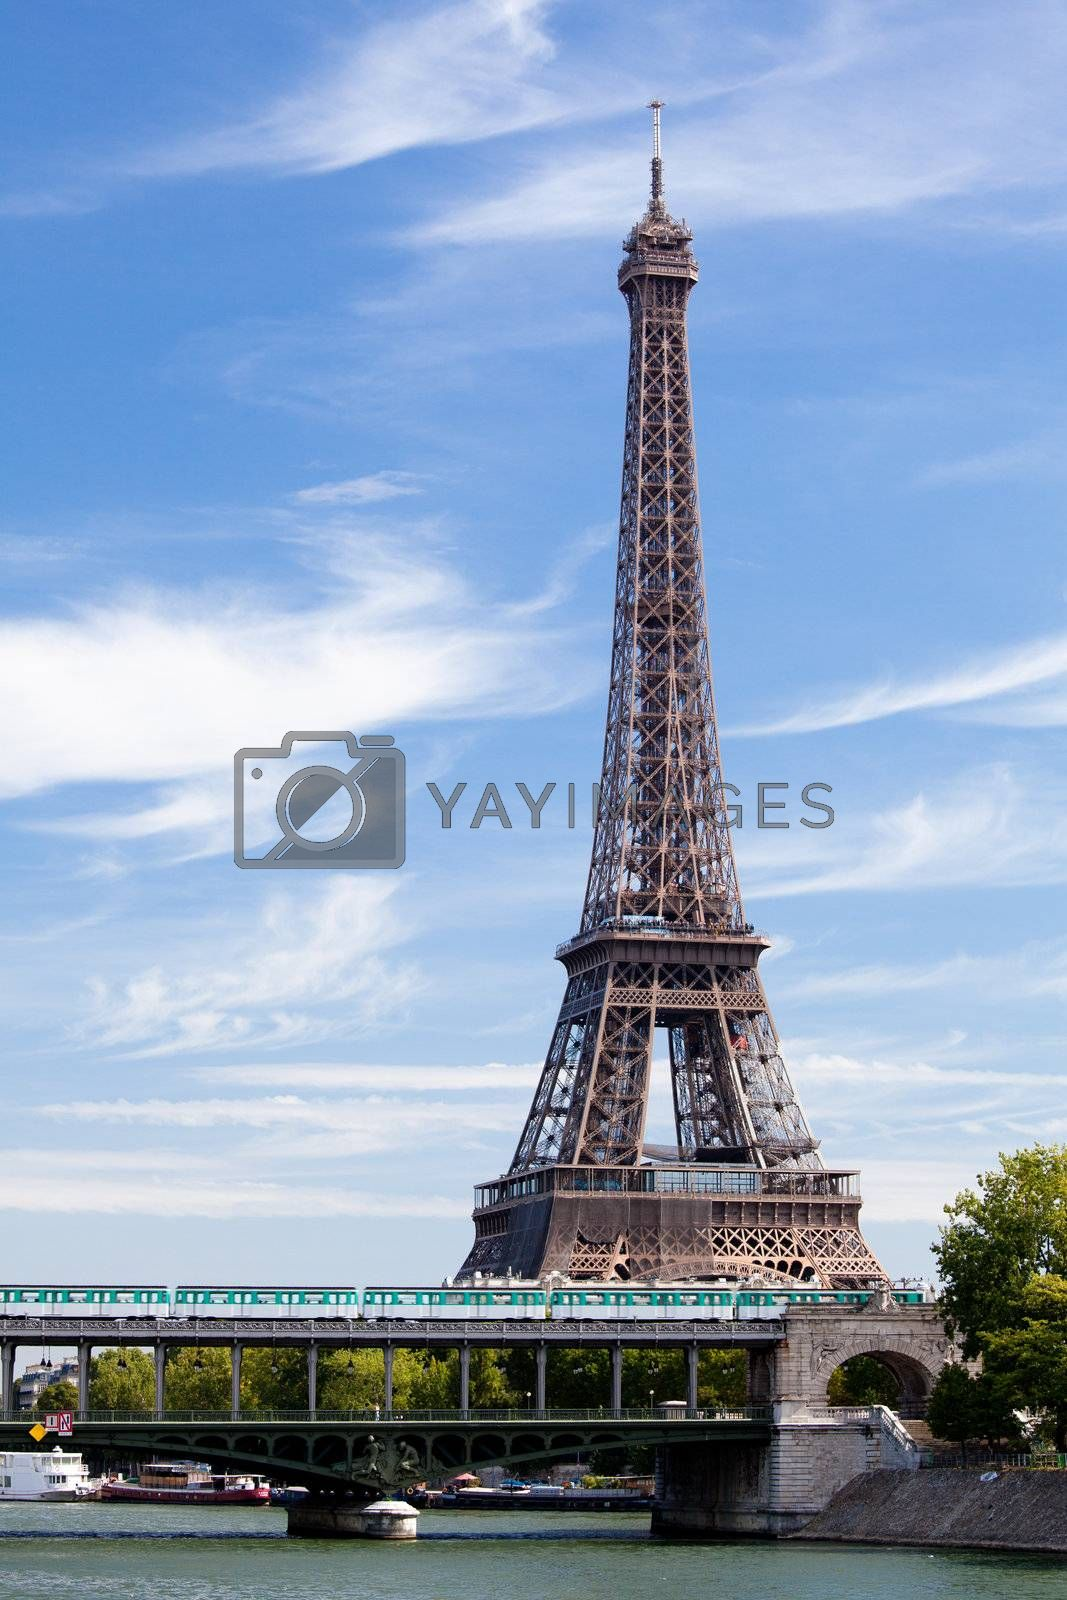 European national landmark Eiffel tower on the bank of Seine river in city Paris France on the blue sky background